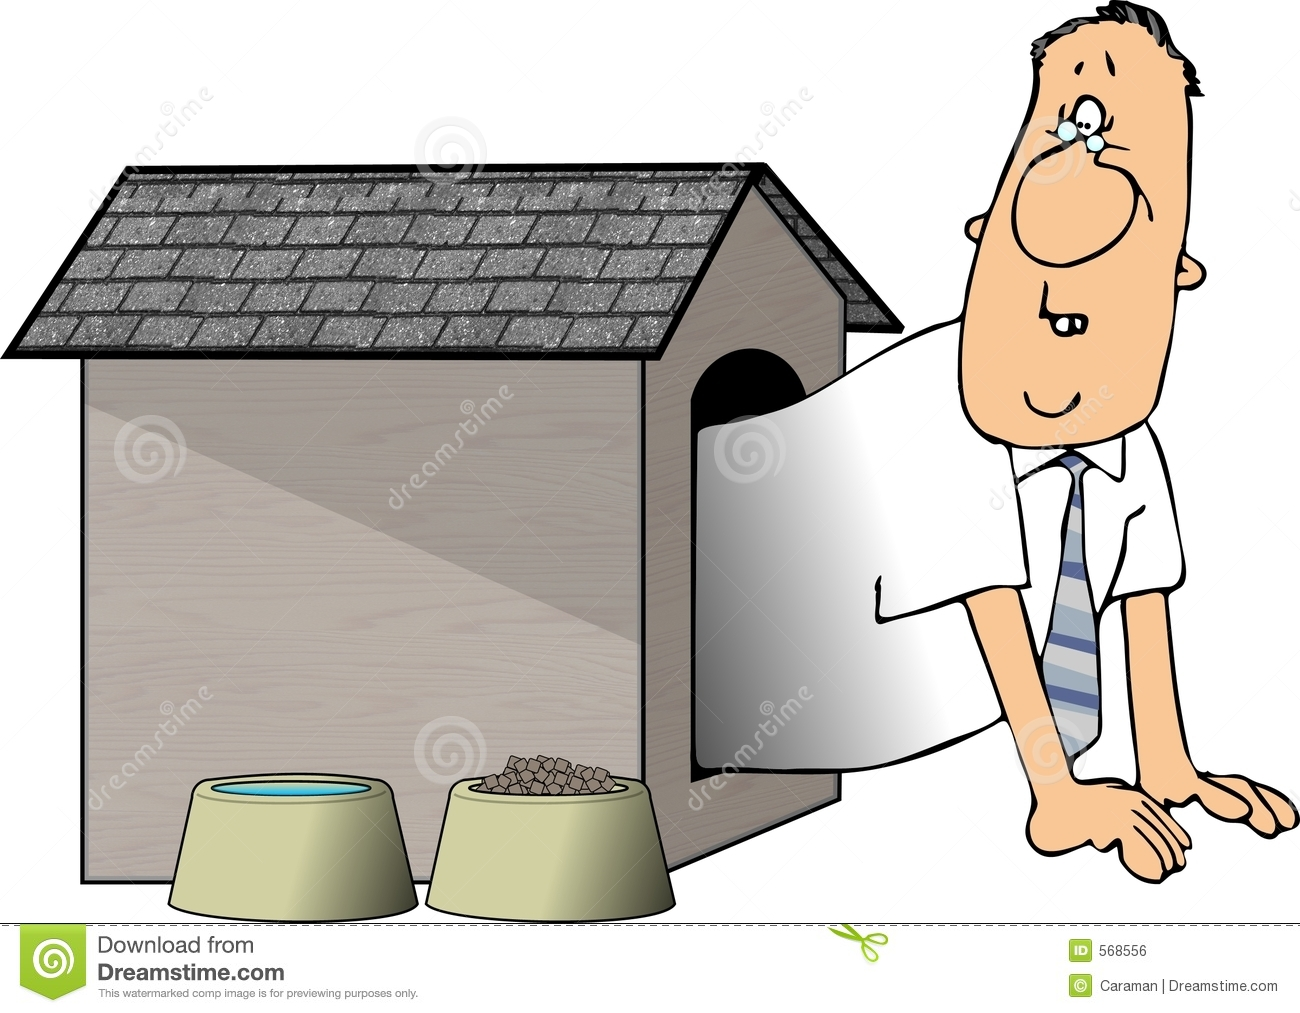 Man In The Doghouse Royalty Free Stock Image - Image: 568556